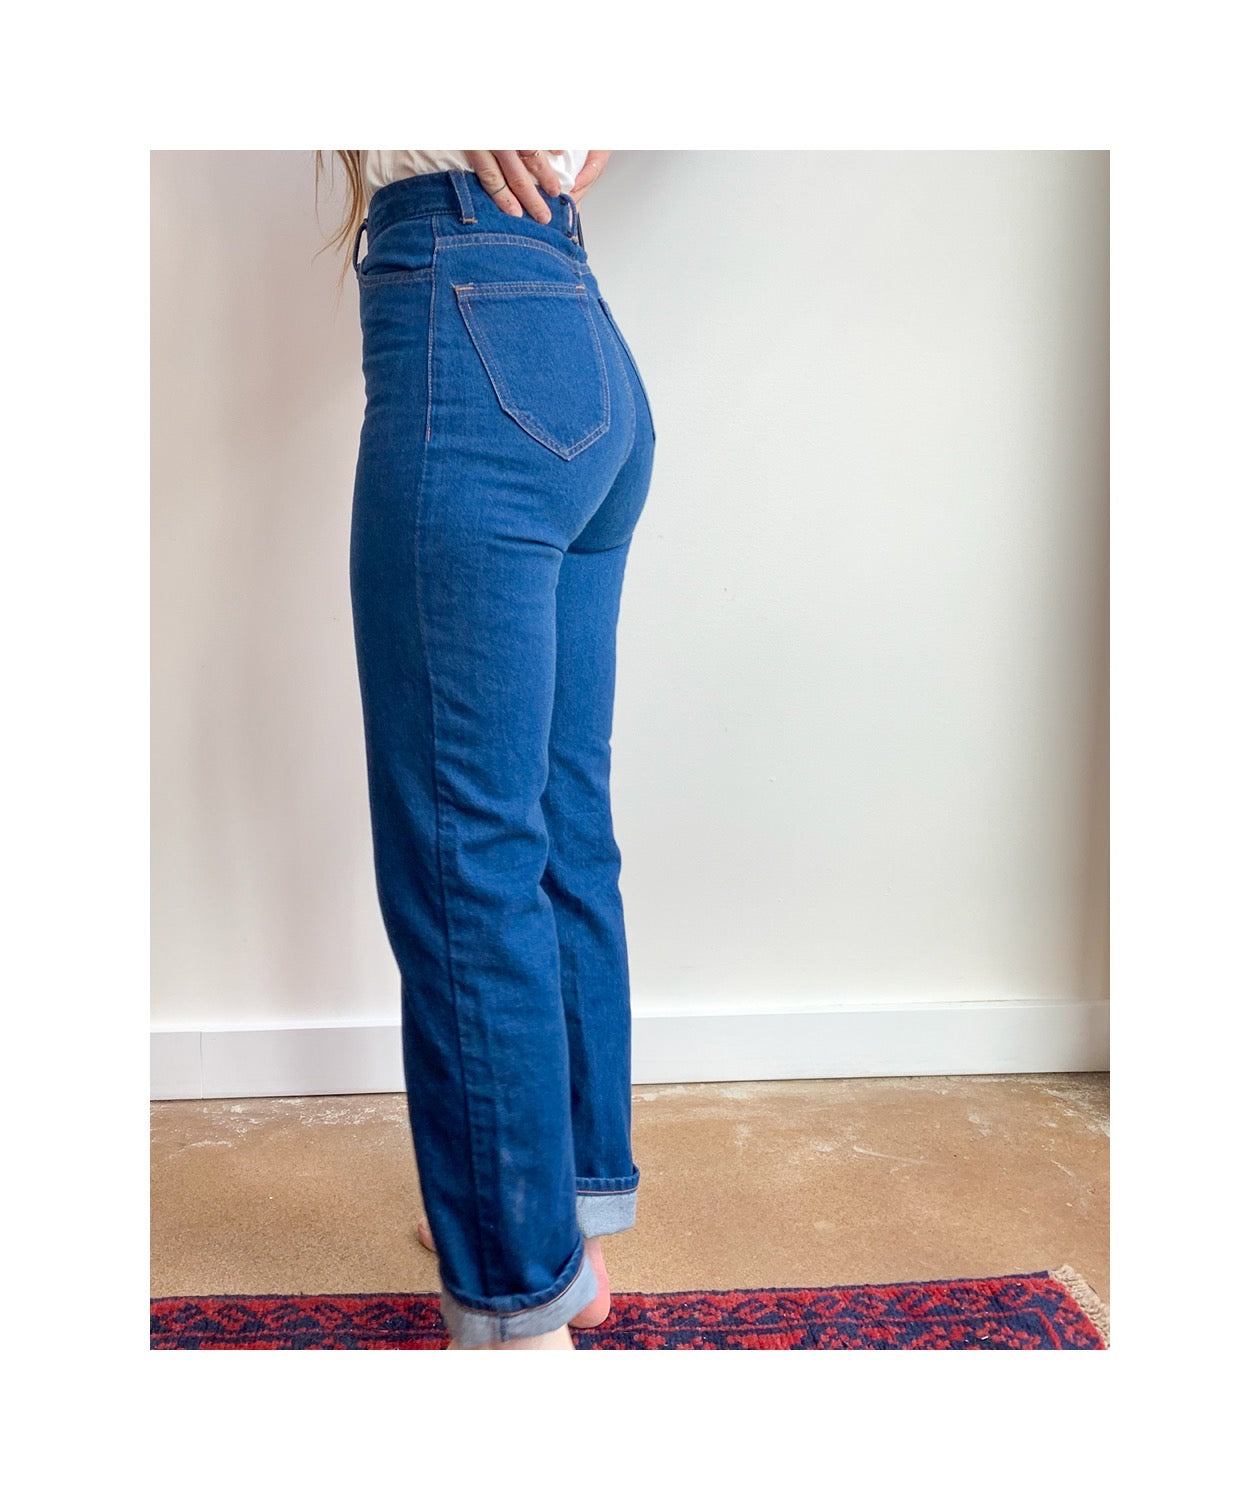 Waist down photo of model wearing sister jeans in classic blue itochu denim facing the left.